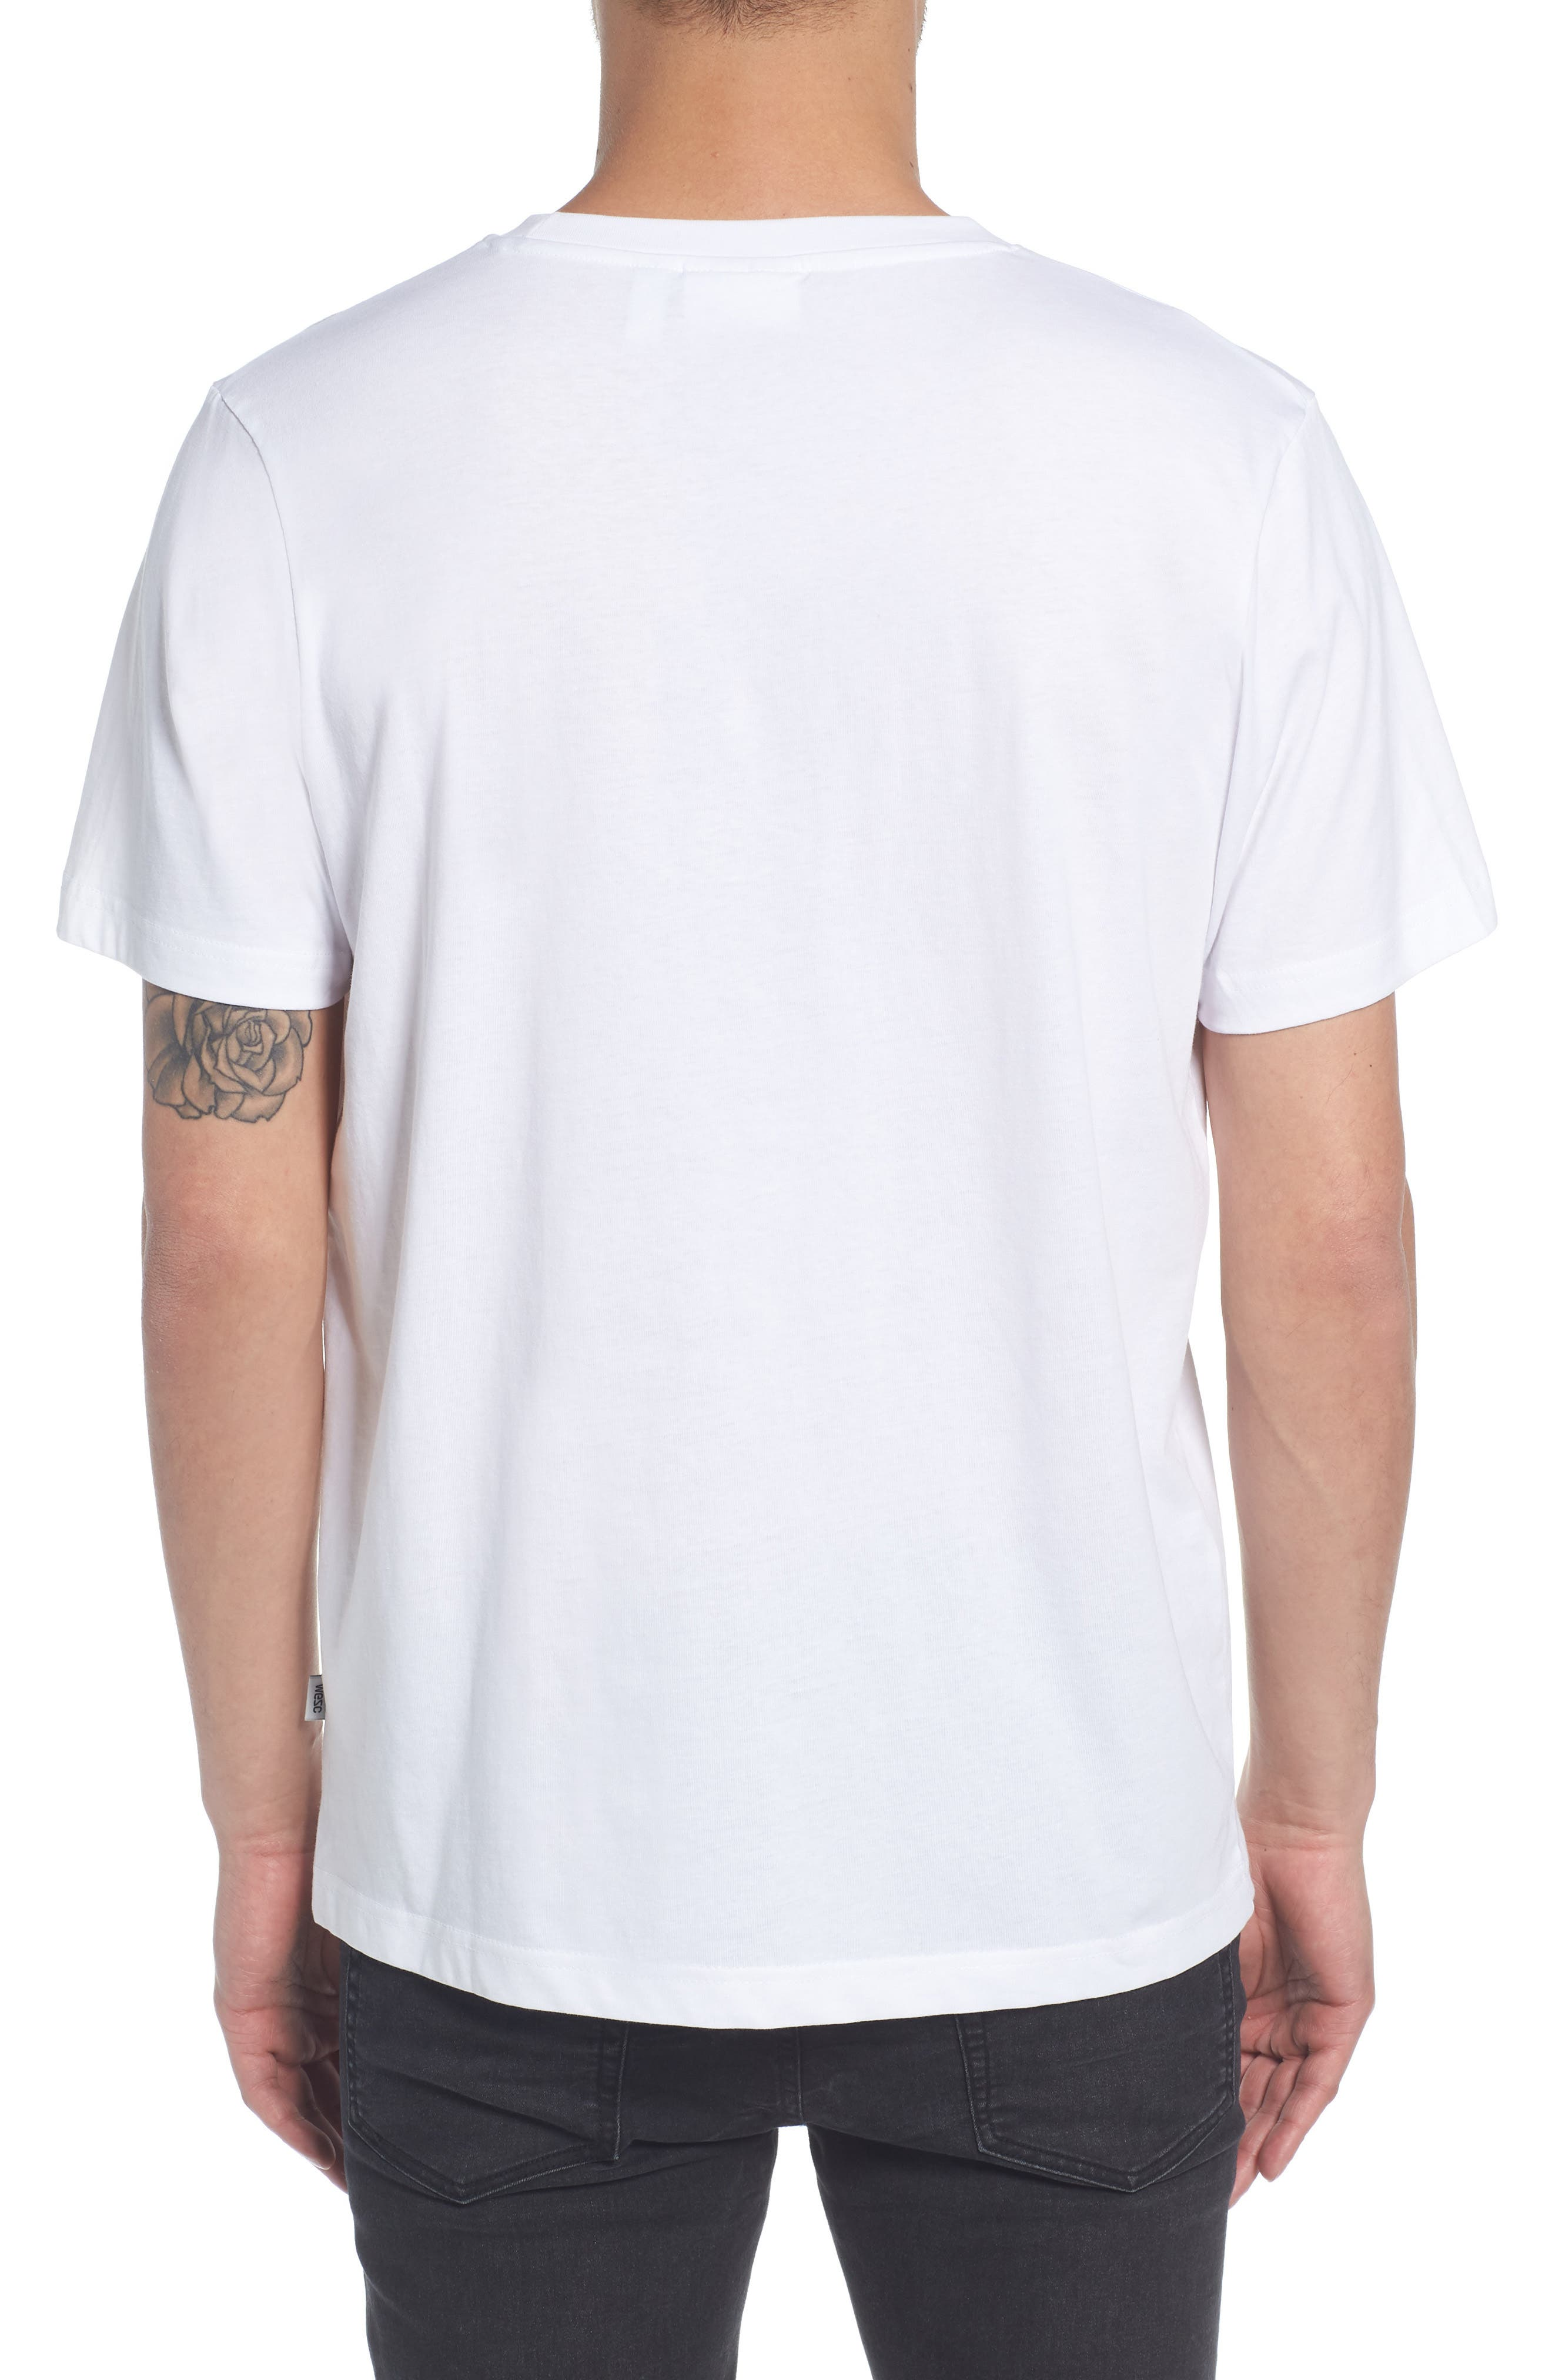 Max We Are All Equal T-Shirt,                             Alternate thumbnail 2, color,                             White